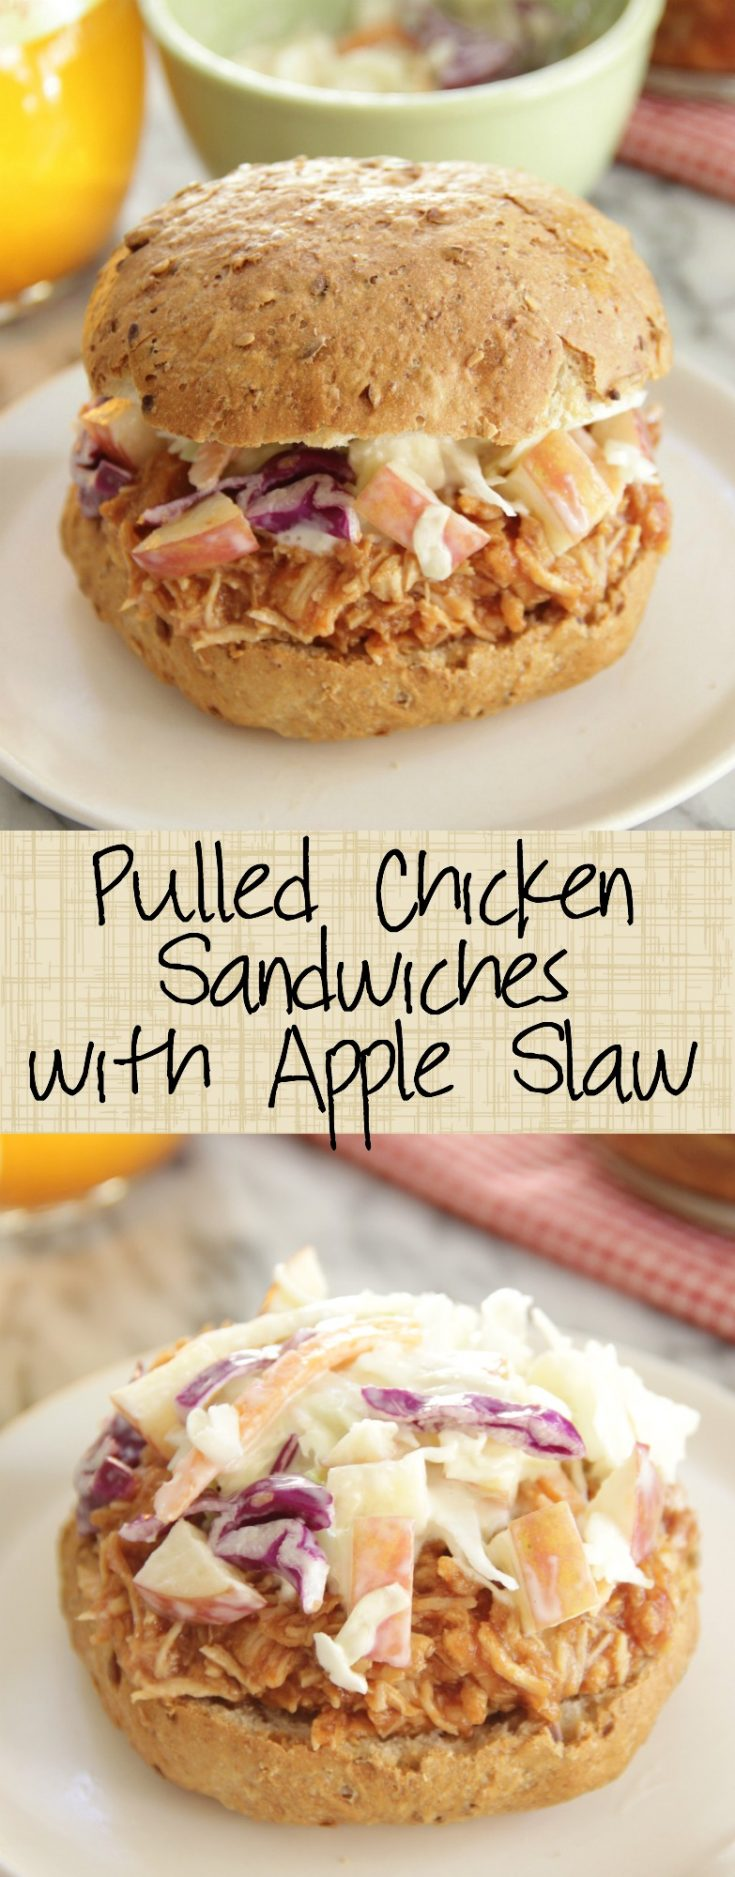 Slow Cooker Pulled Chicken Sandwiches with Apple Slaw